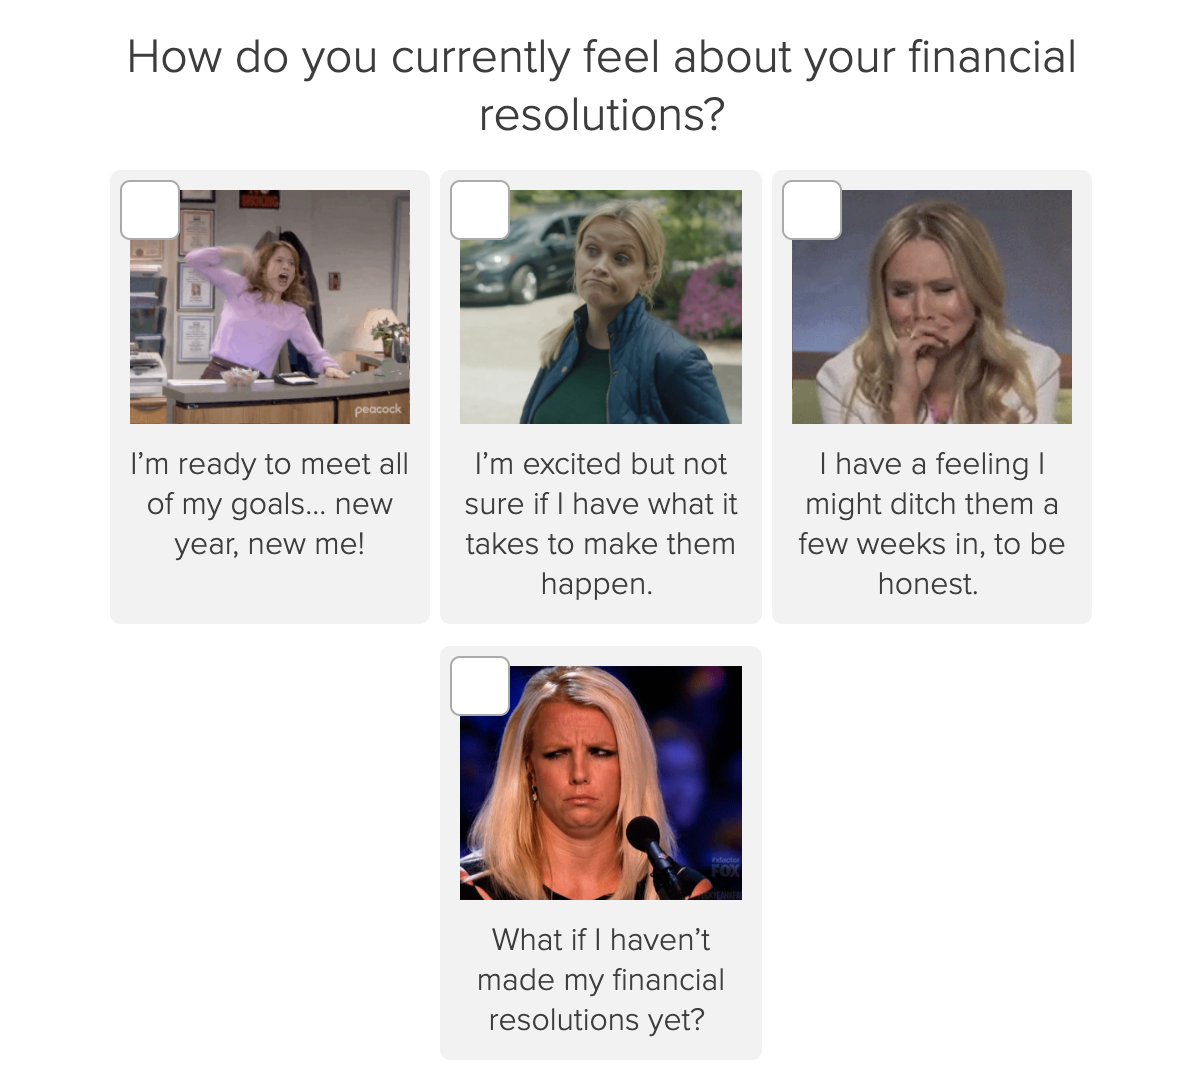 financial new year's resolutions quiz question